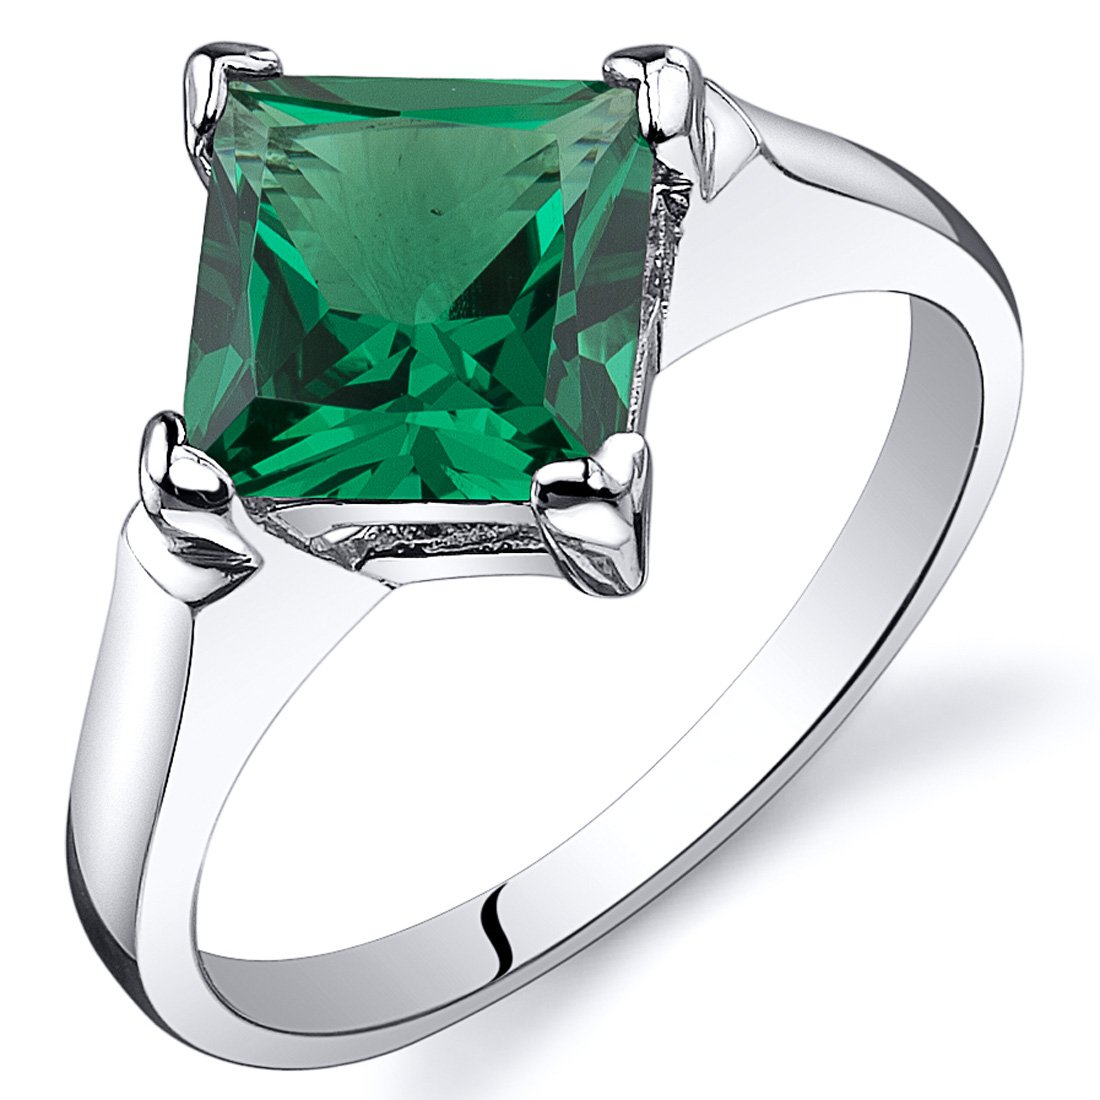 Striking 1.50 carats Simulated Emerald Ring in Sterling Silver Rhodium Nickel Finish Size 5